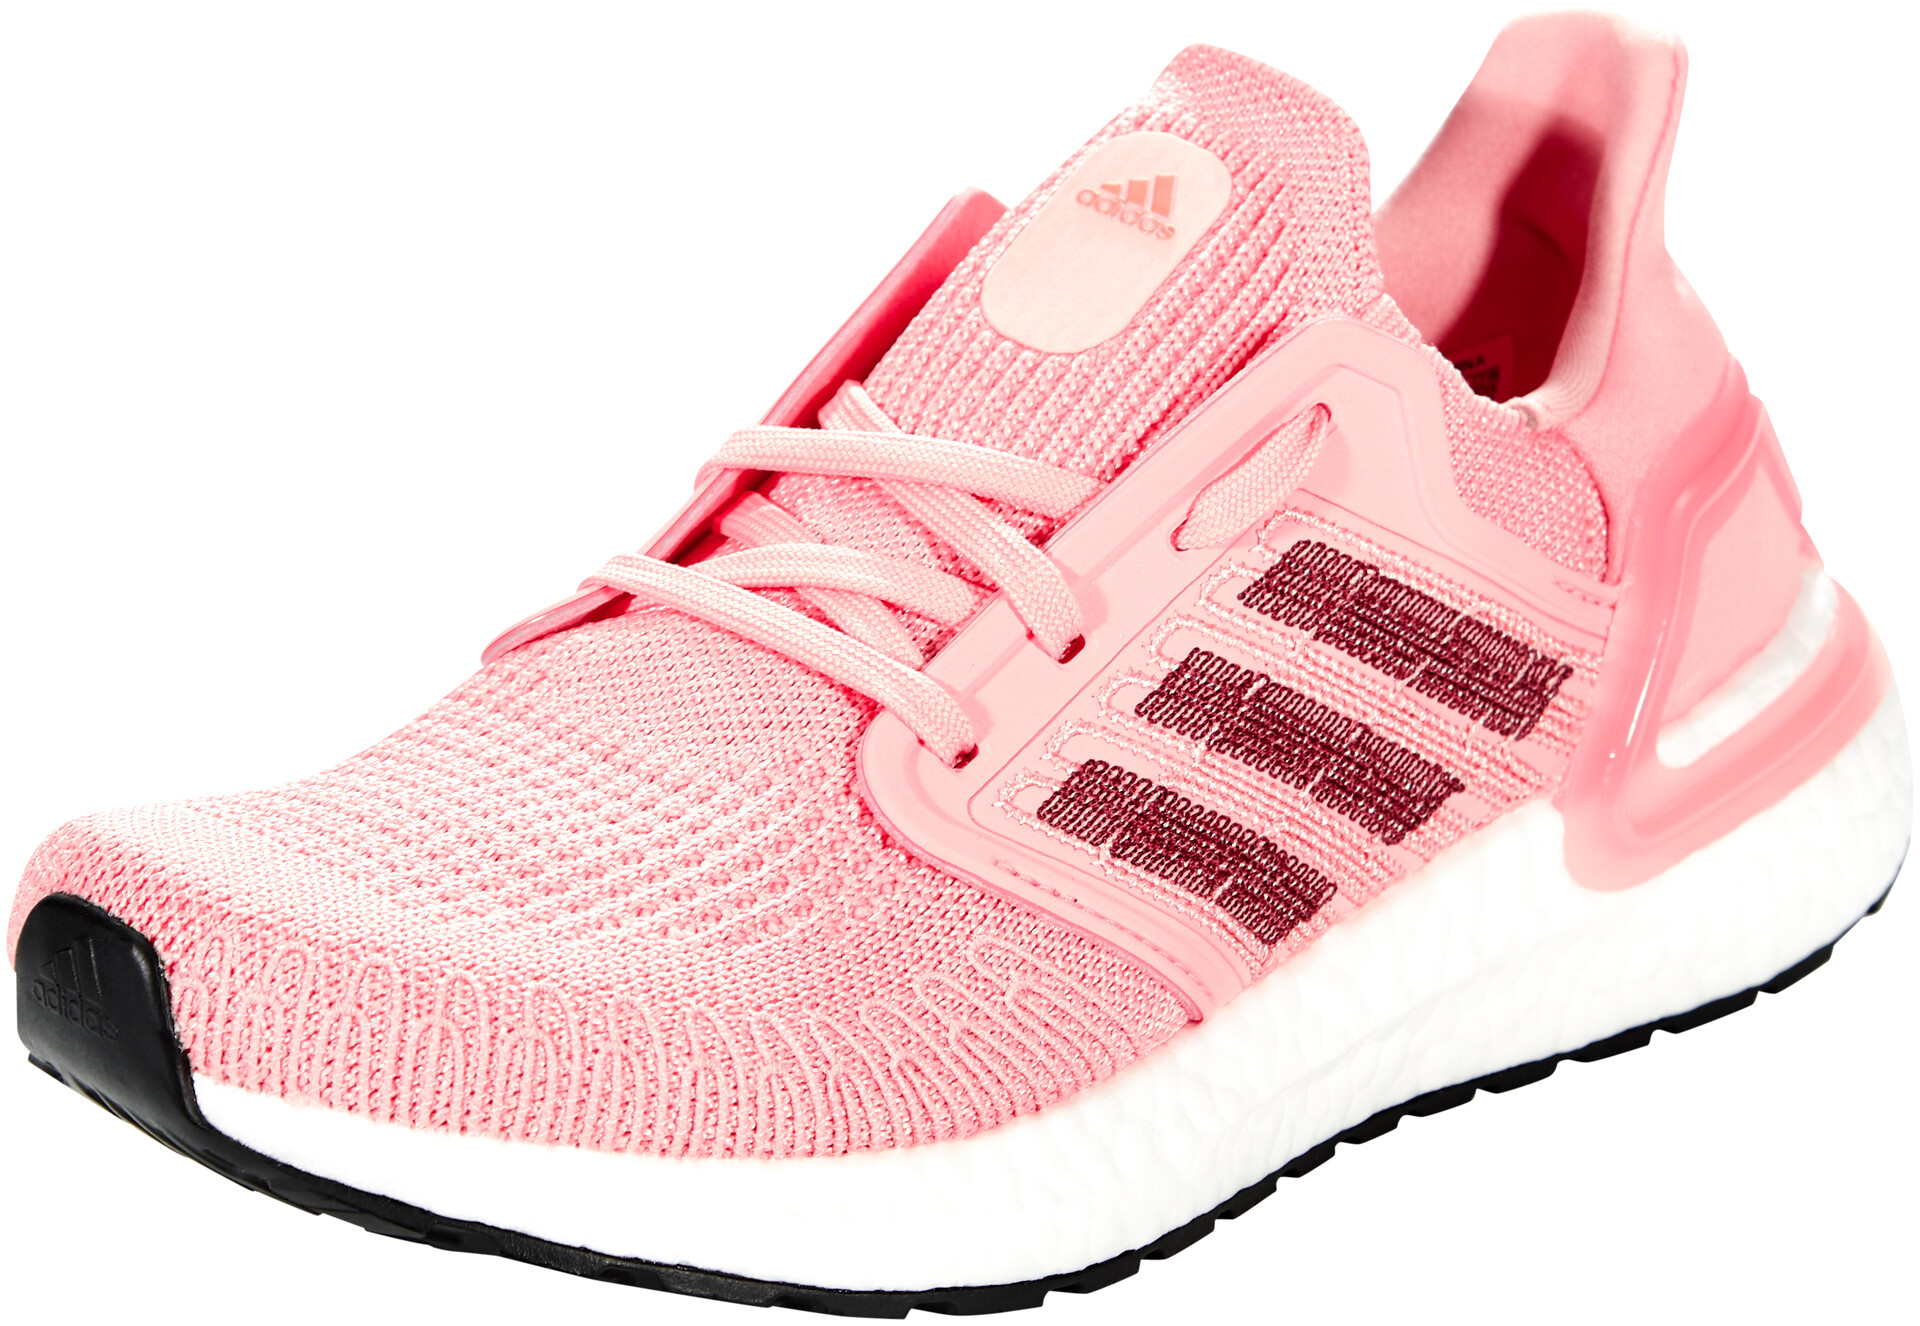 adidas Ultraboost 20 Schoenen Dames, glory pink/maroon/signal coral